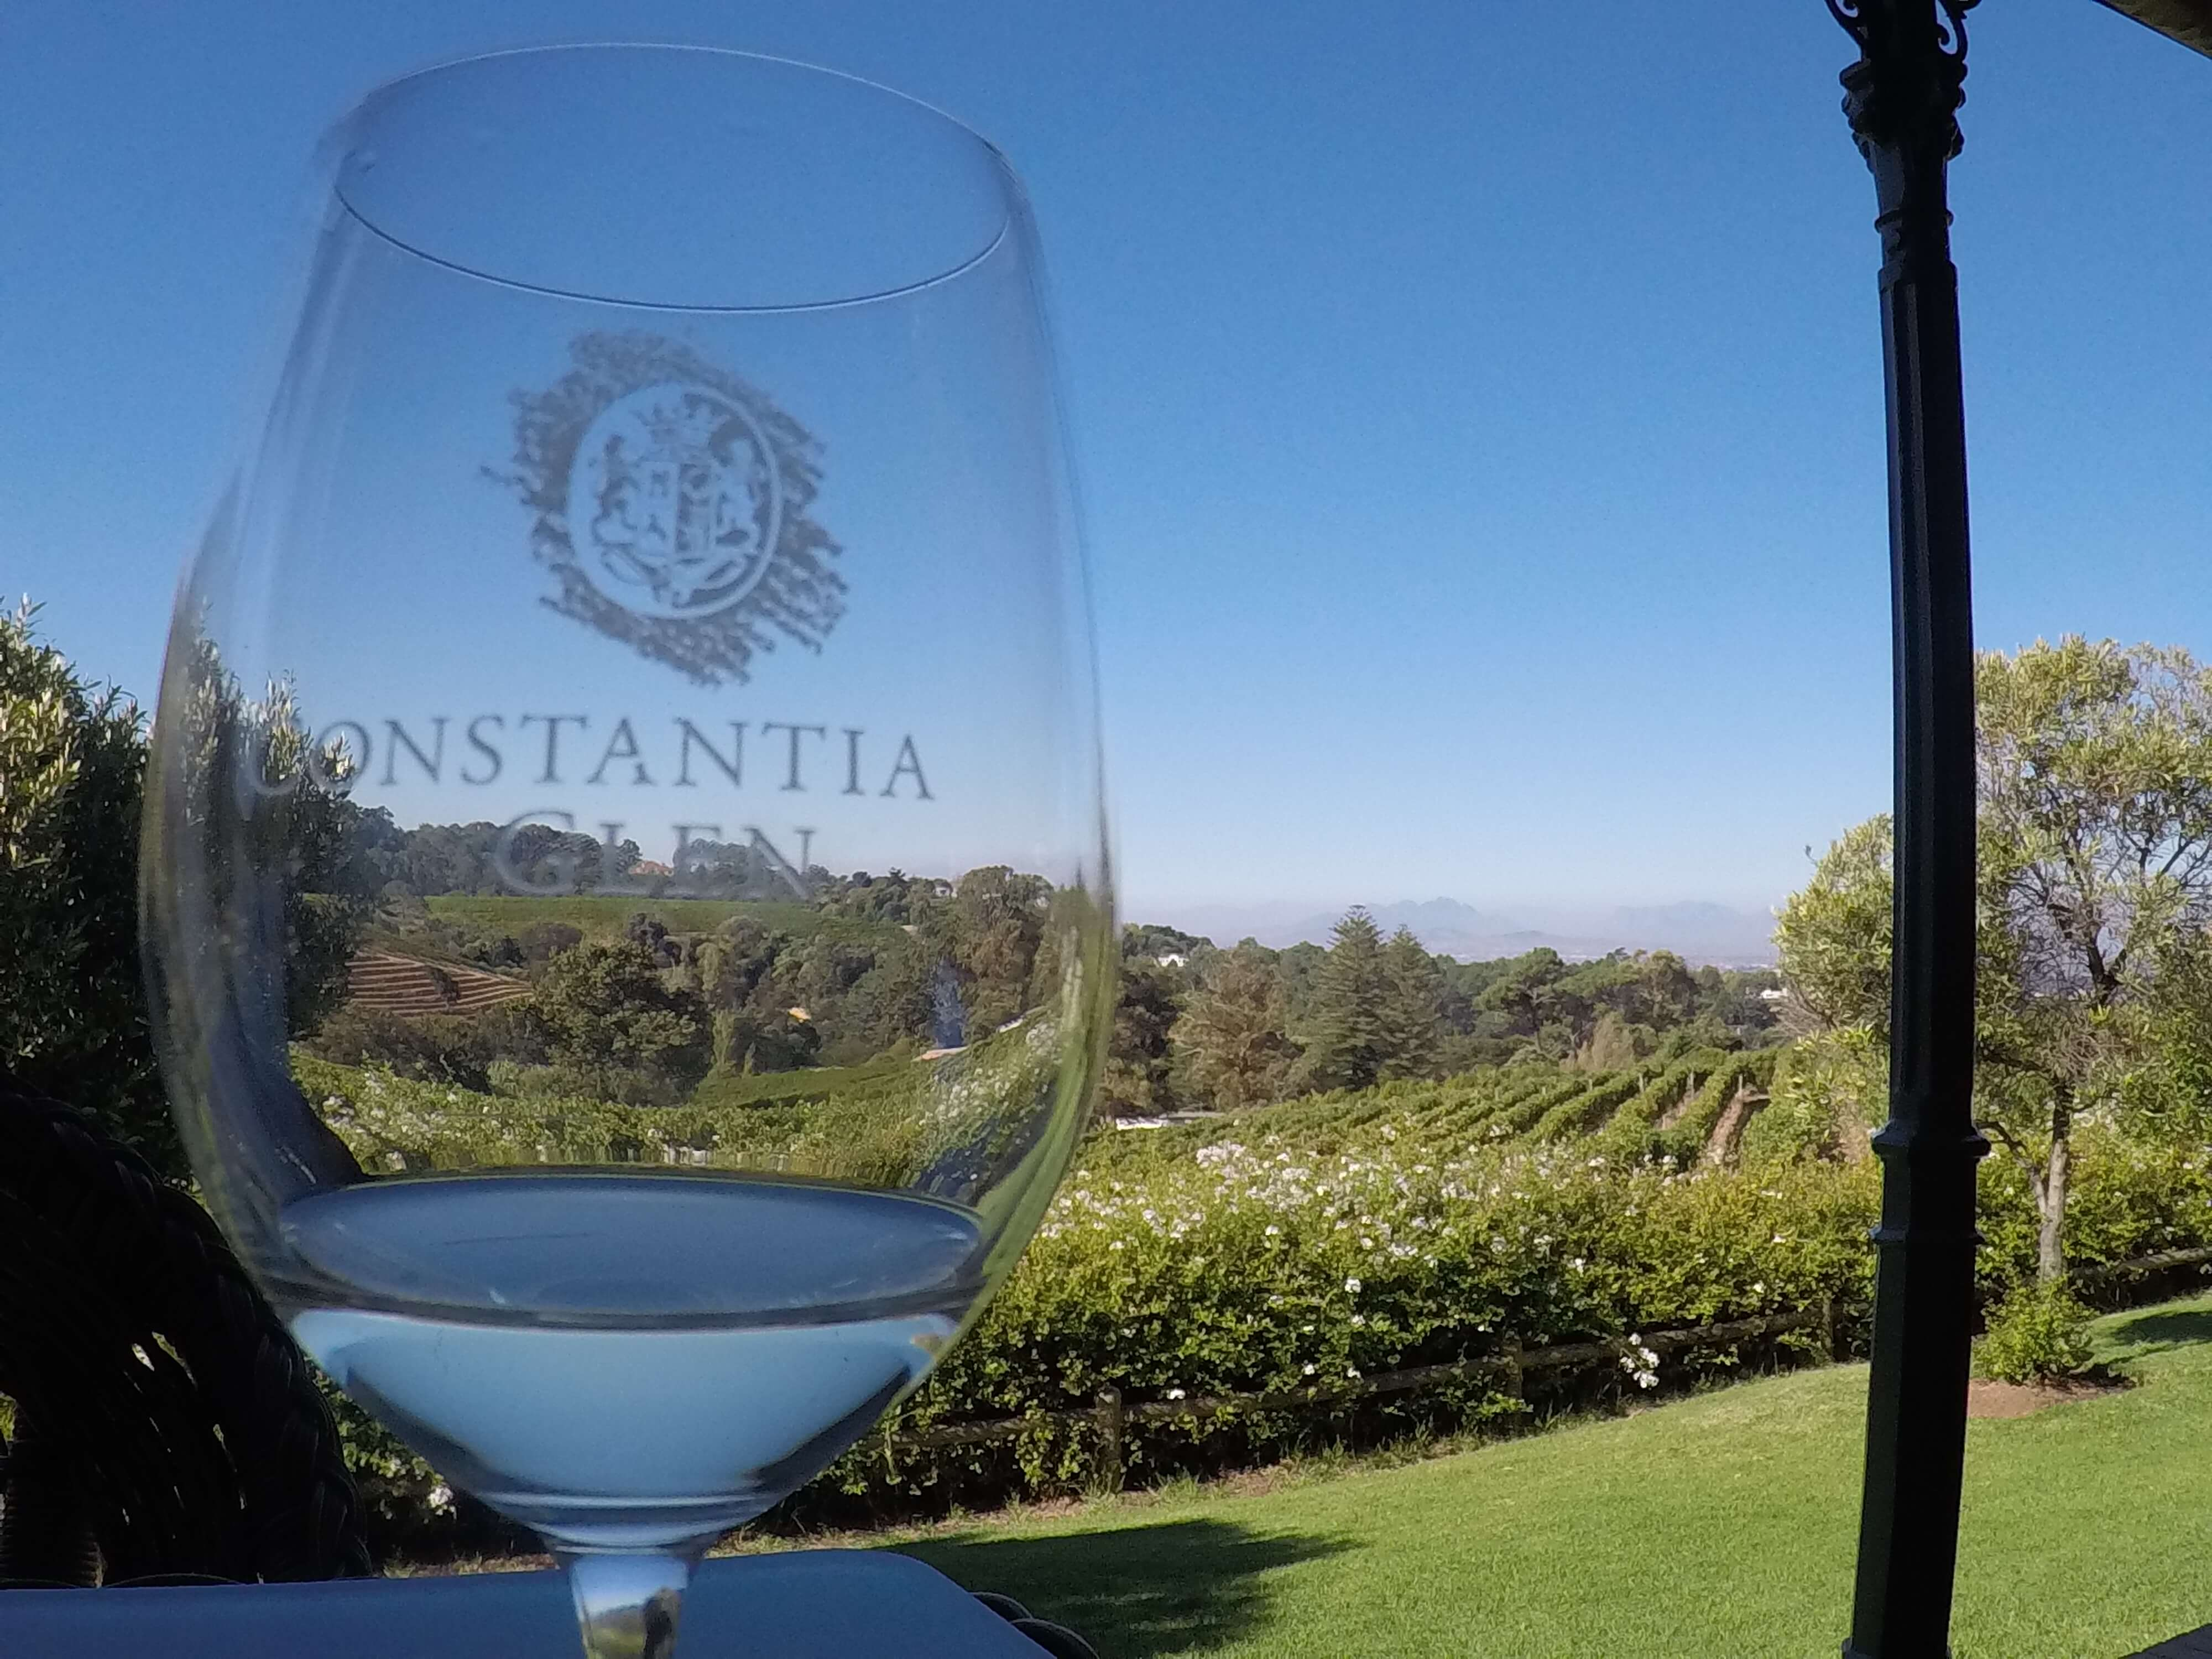 Wine tasting at constantia glen winery cape town south africa